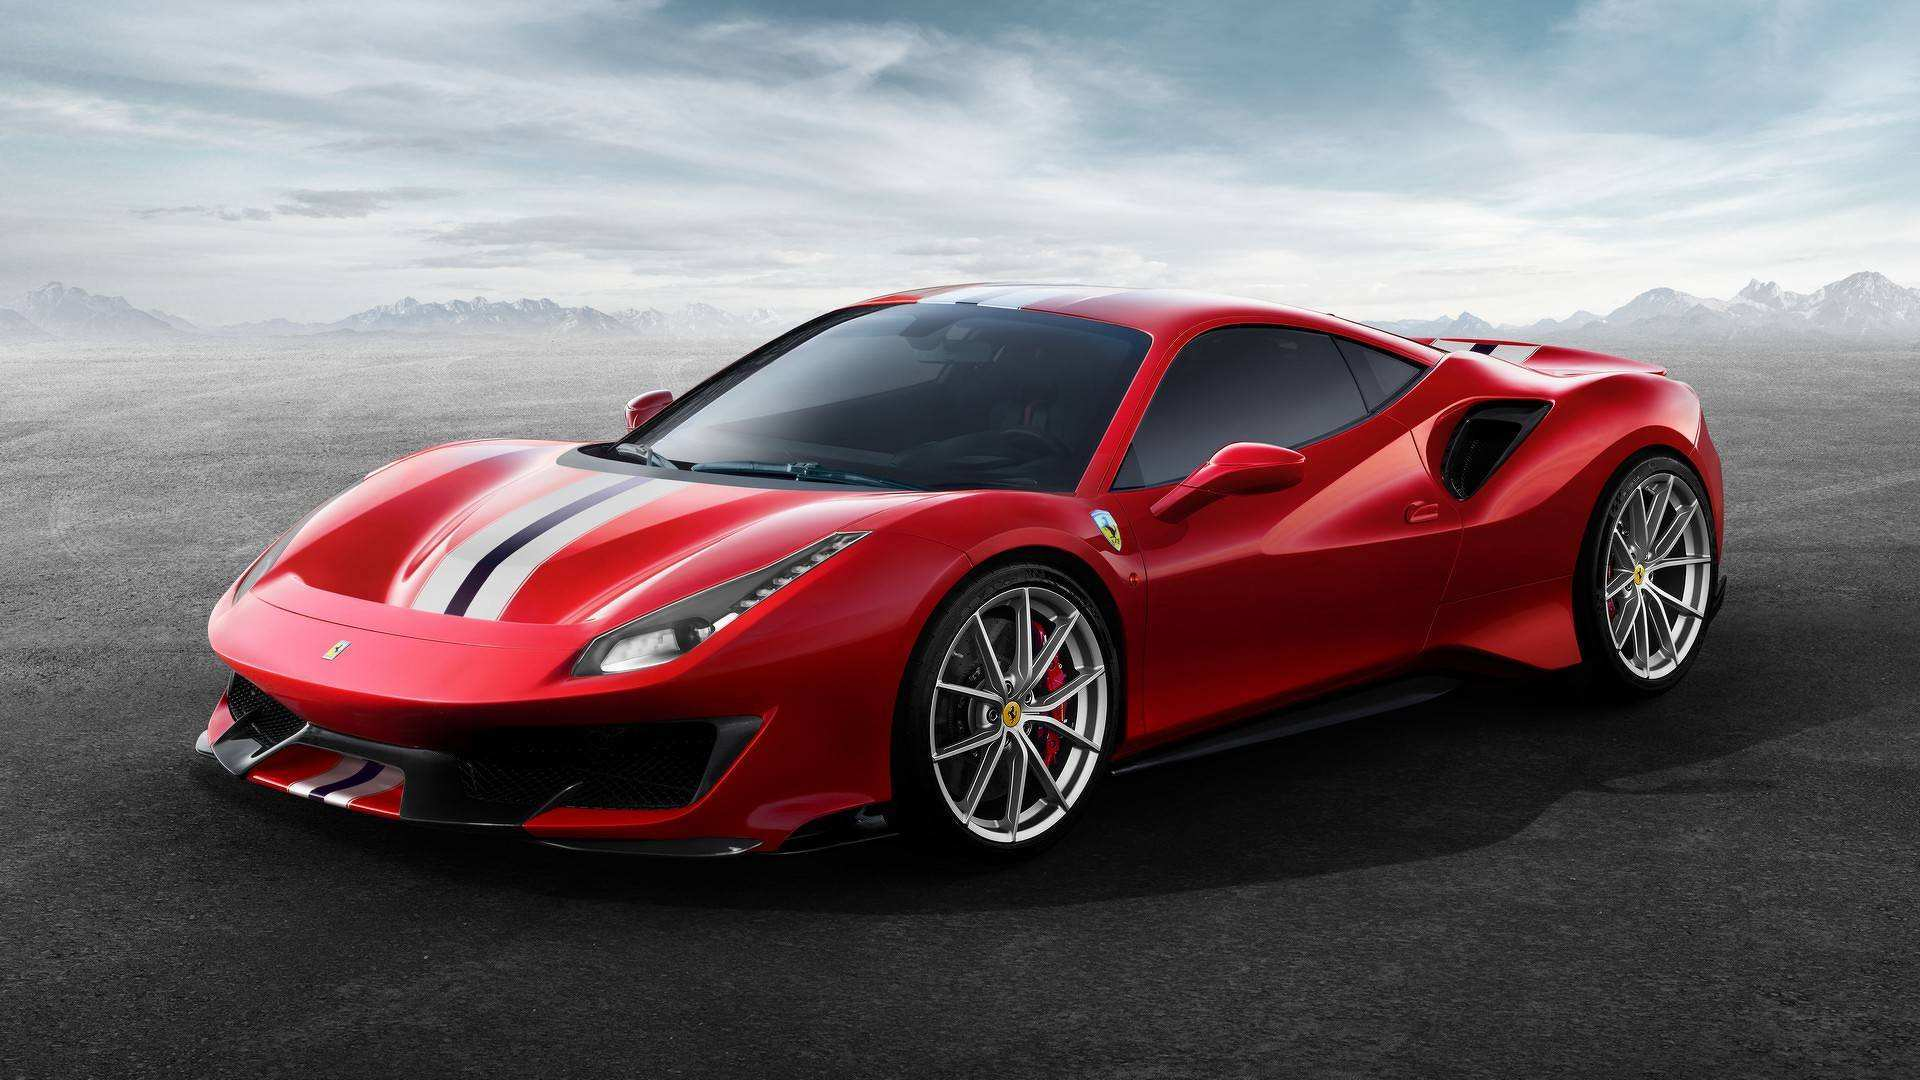 88 Concept of Ferrari Hybride 2019 Photos by Ferrari Hybride 2019